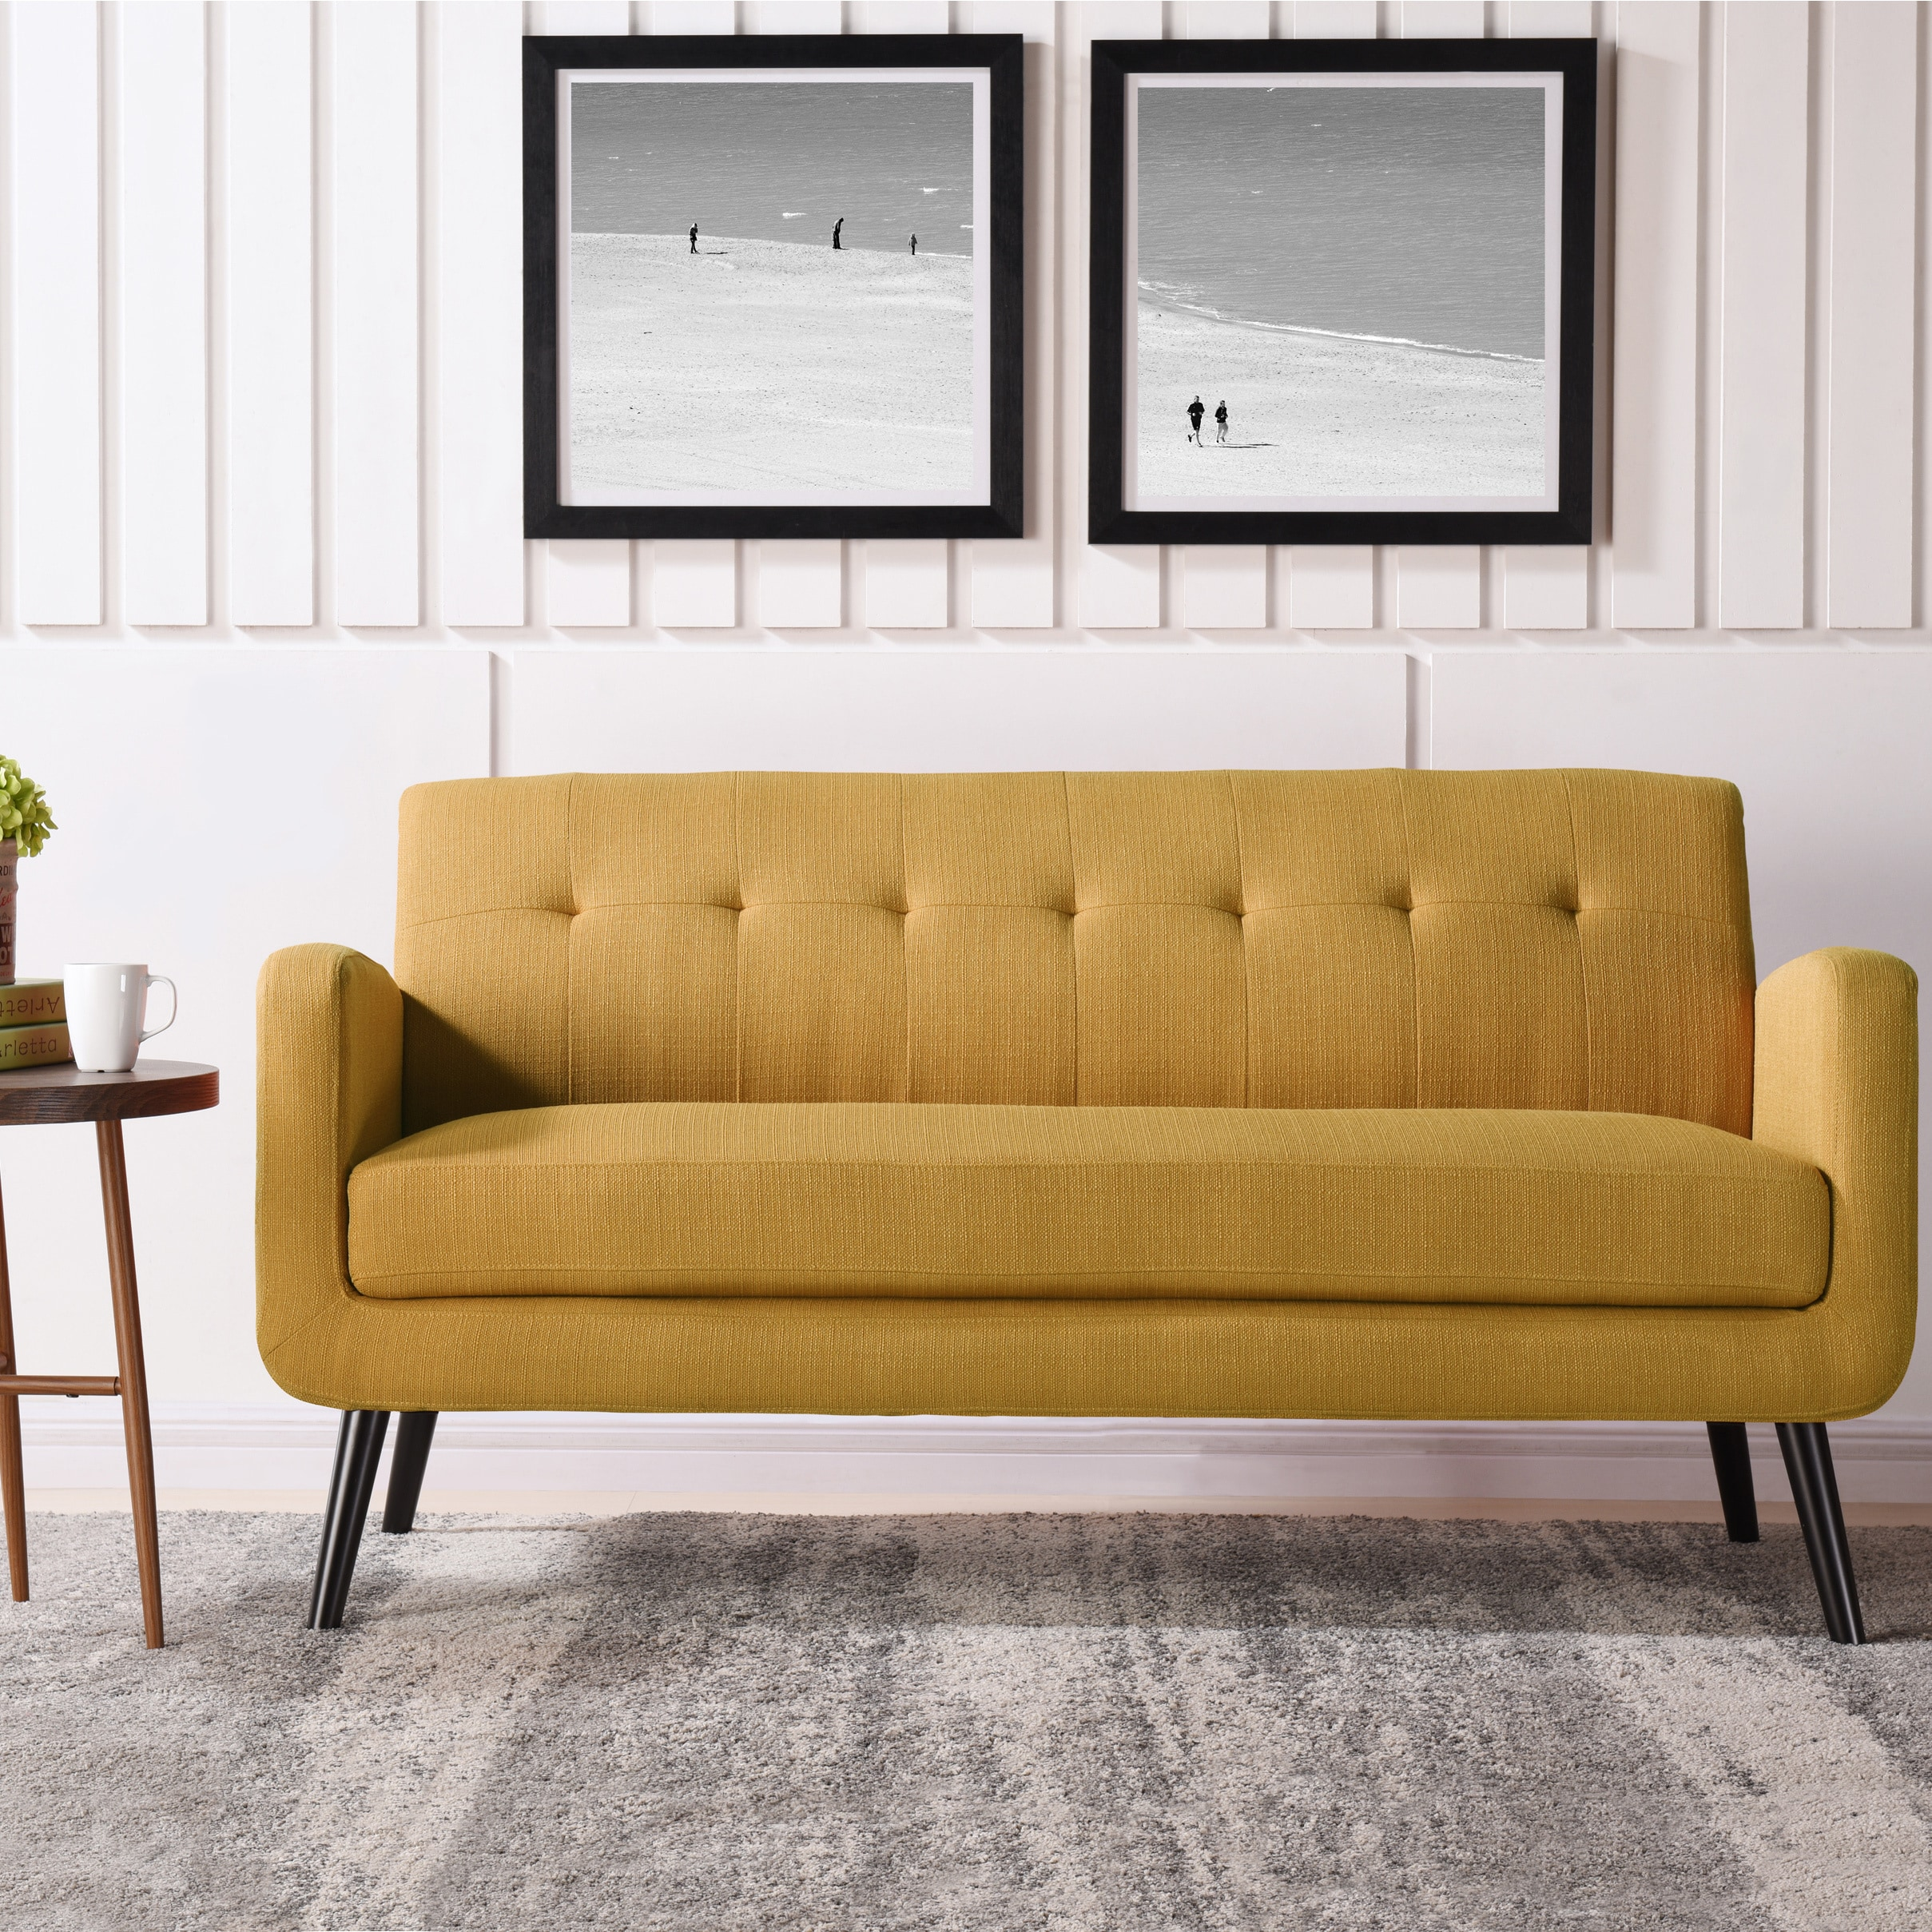 Astonishing Buy Sofas Couches Online At Overstock Our Best Living Pabps2019 Chair Design Images Pabps2019Com